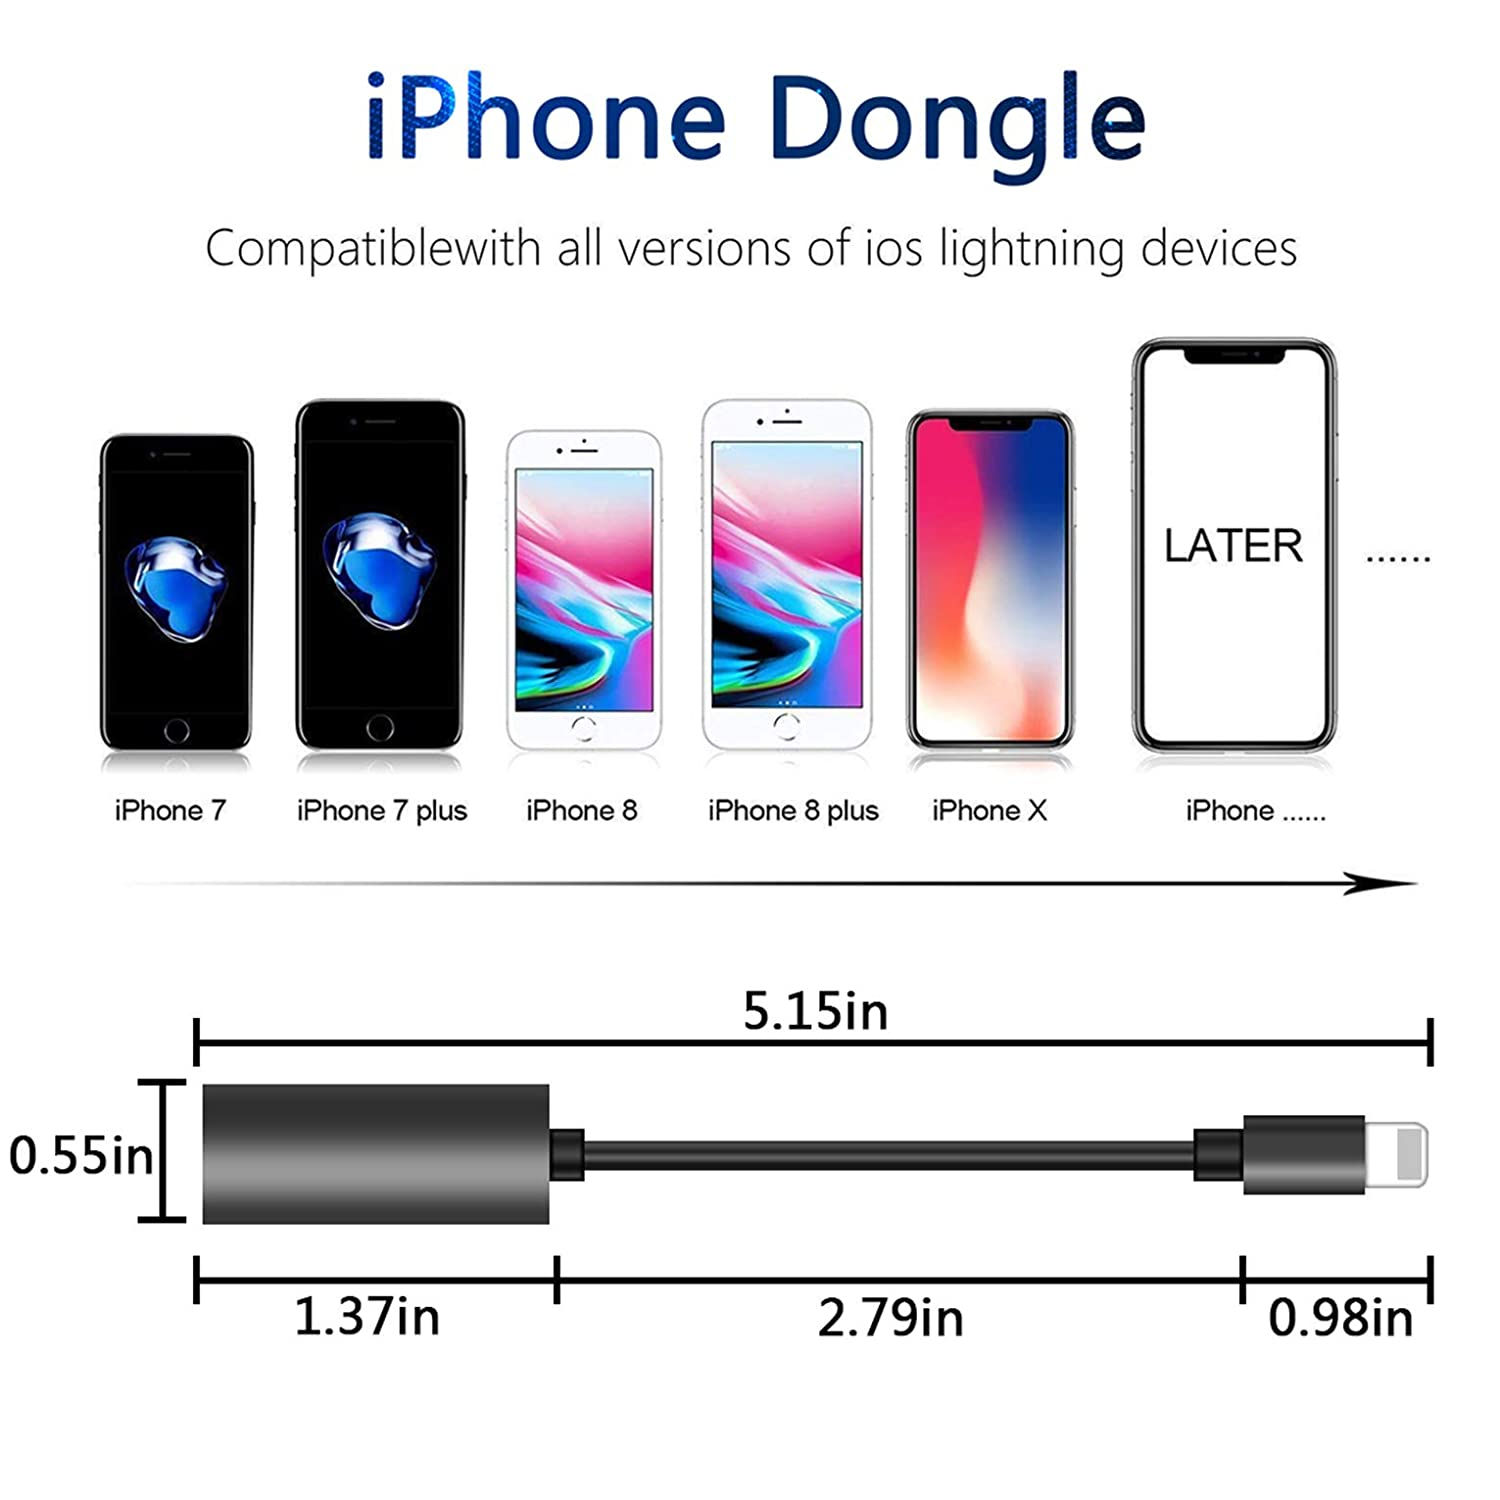 Headphone Adapter for iPhone Charger Jack AUX Audio 3.5 mm Jack Adapter for iPhone Adapter Splitter Earphone for iPhone 7//7p//8//8p//11//X Dongle Accessory Connector Compatible Audio Charge Adapter